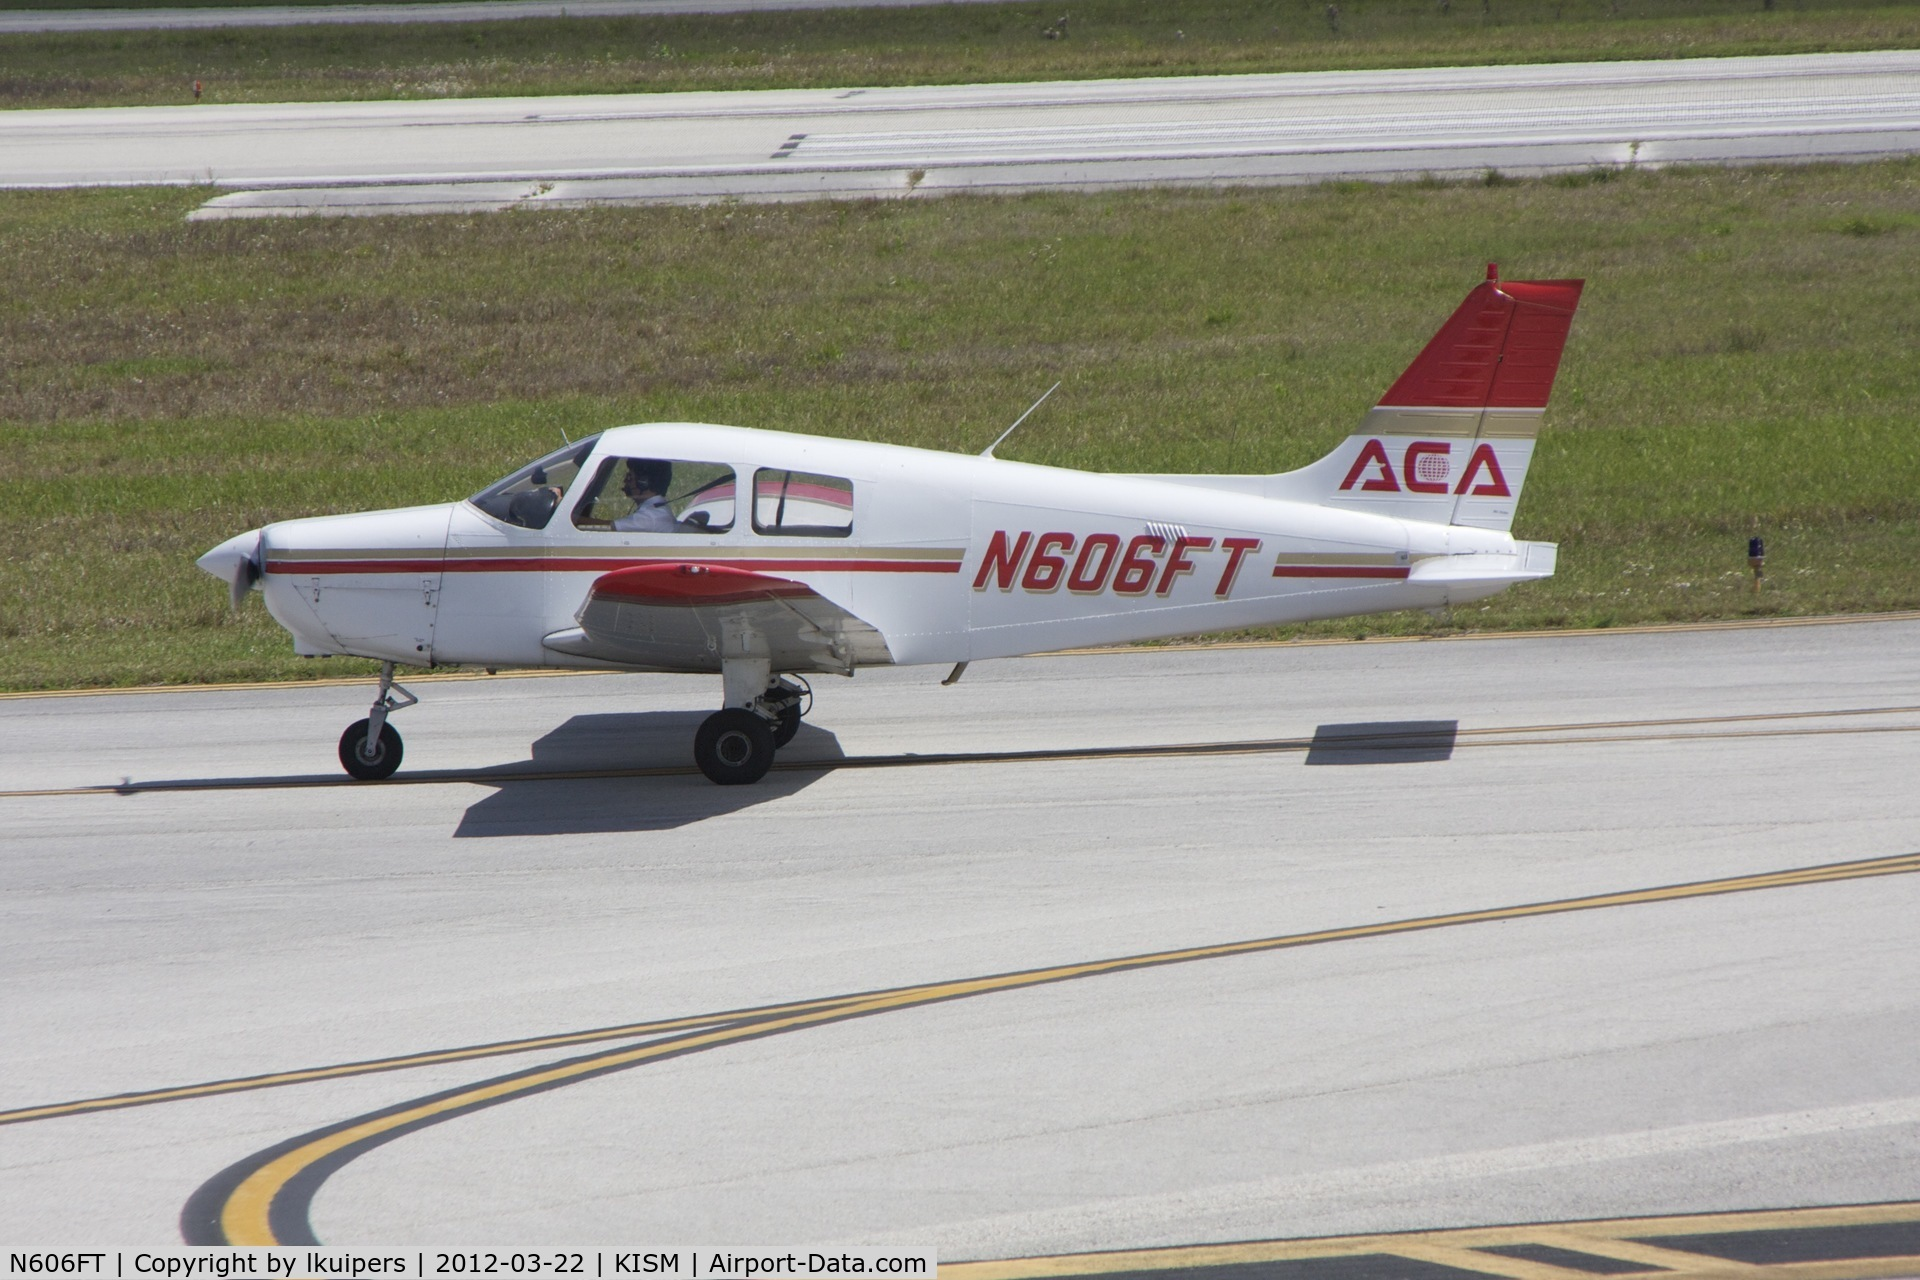 N606FT, 1989 Piper PA-28-161 C/N 2841199, Taxiing to RW15 at Kissimmee Airport